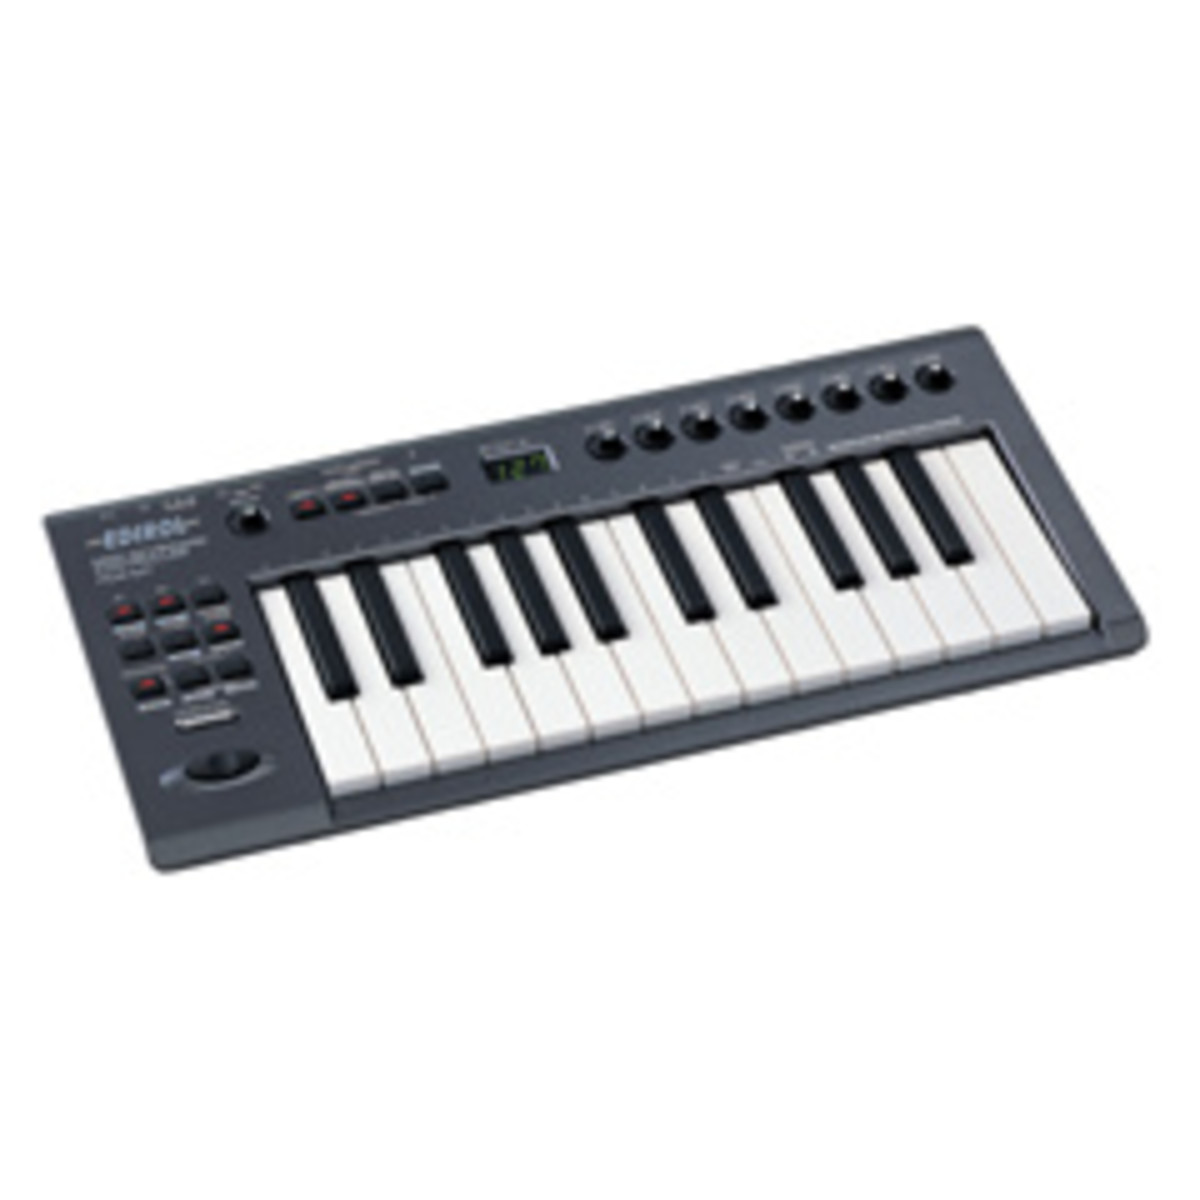 Edirol PCR-M1 Controller Keyboard At Gear4music.com